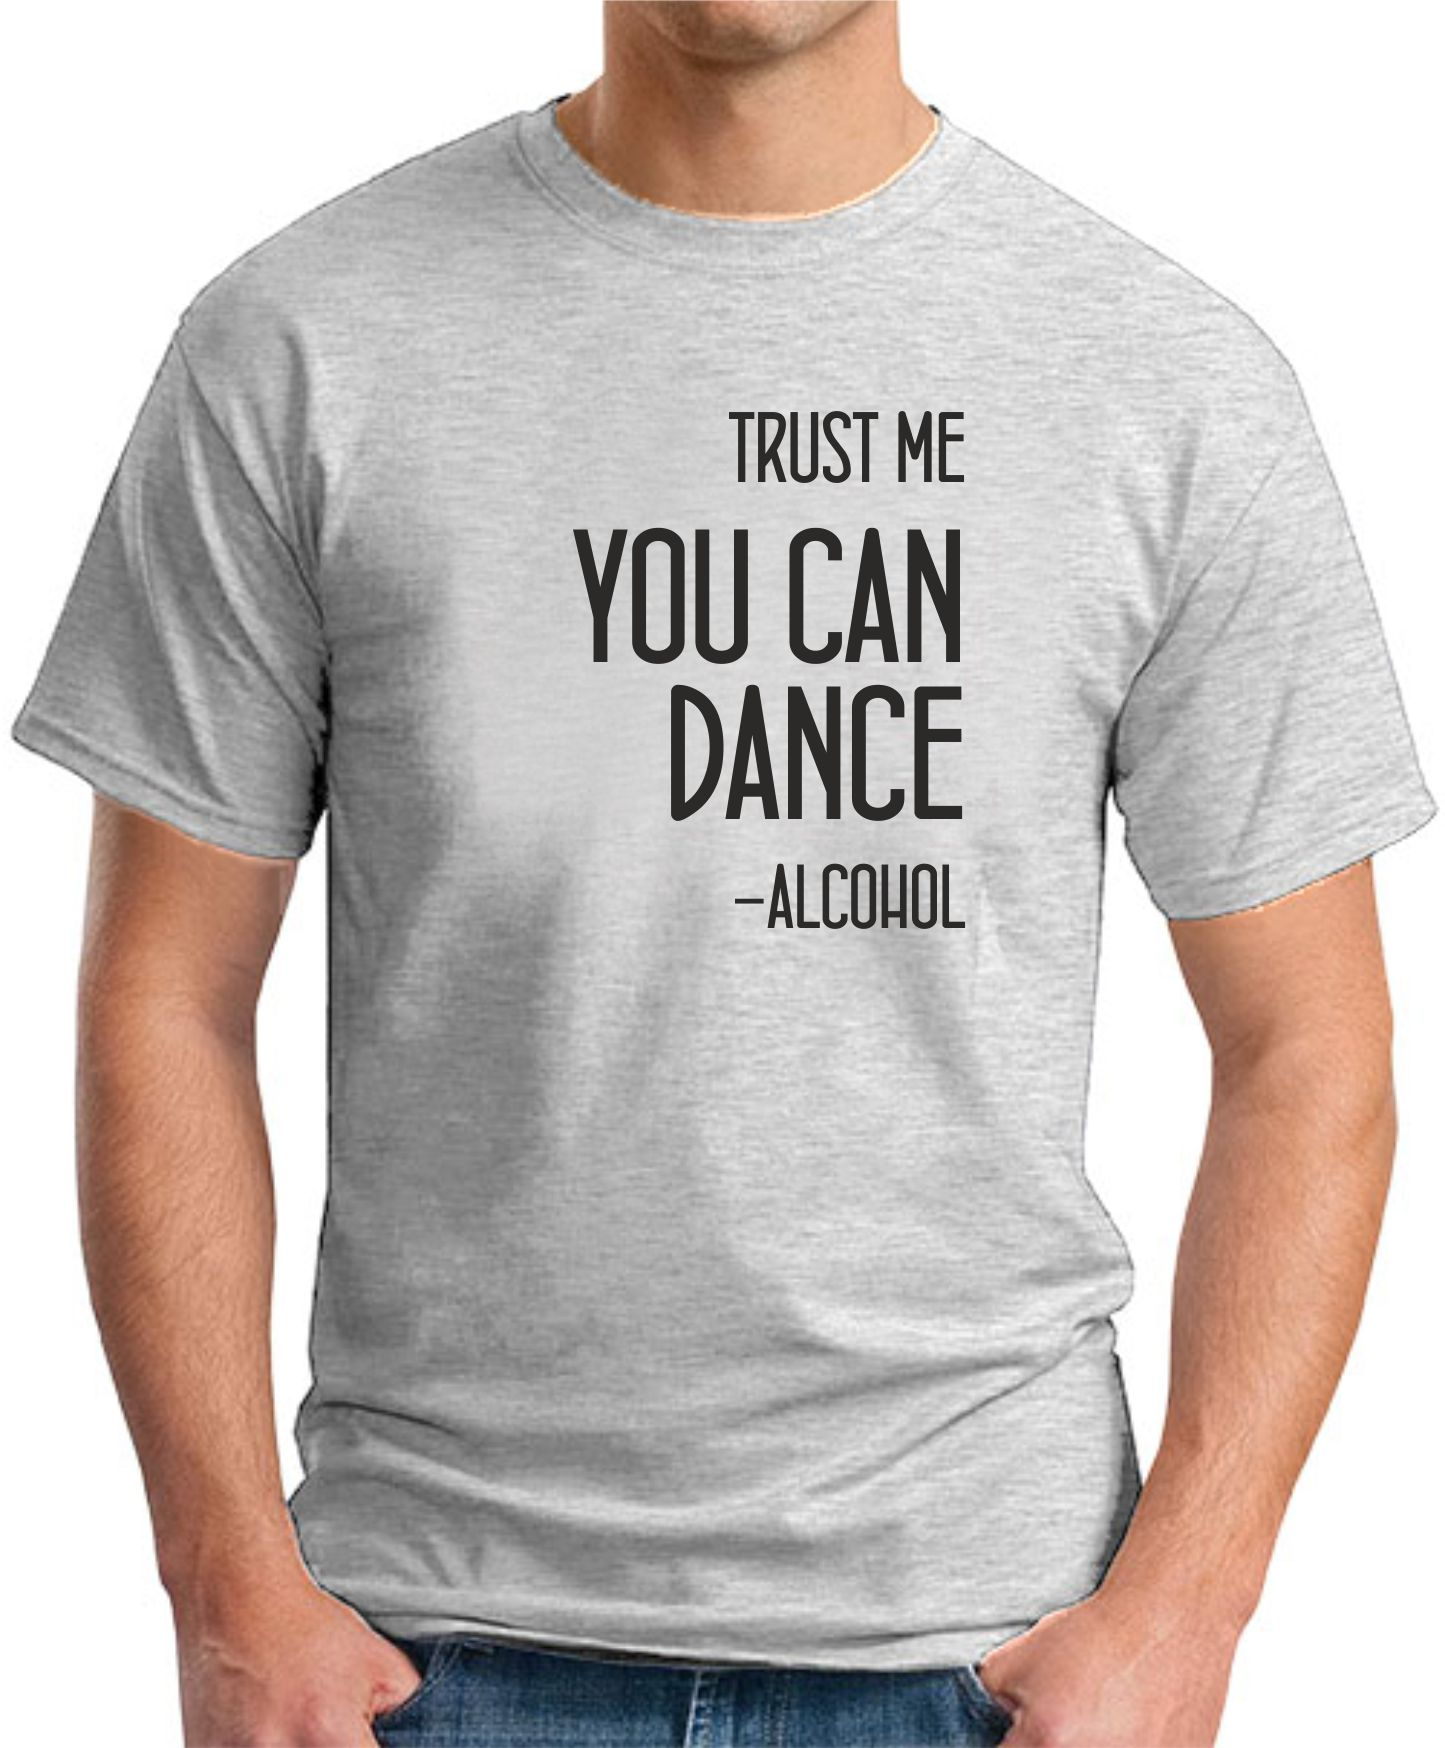 TRUST ME YOU CAN DANCE ash grey